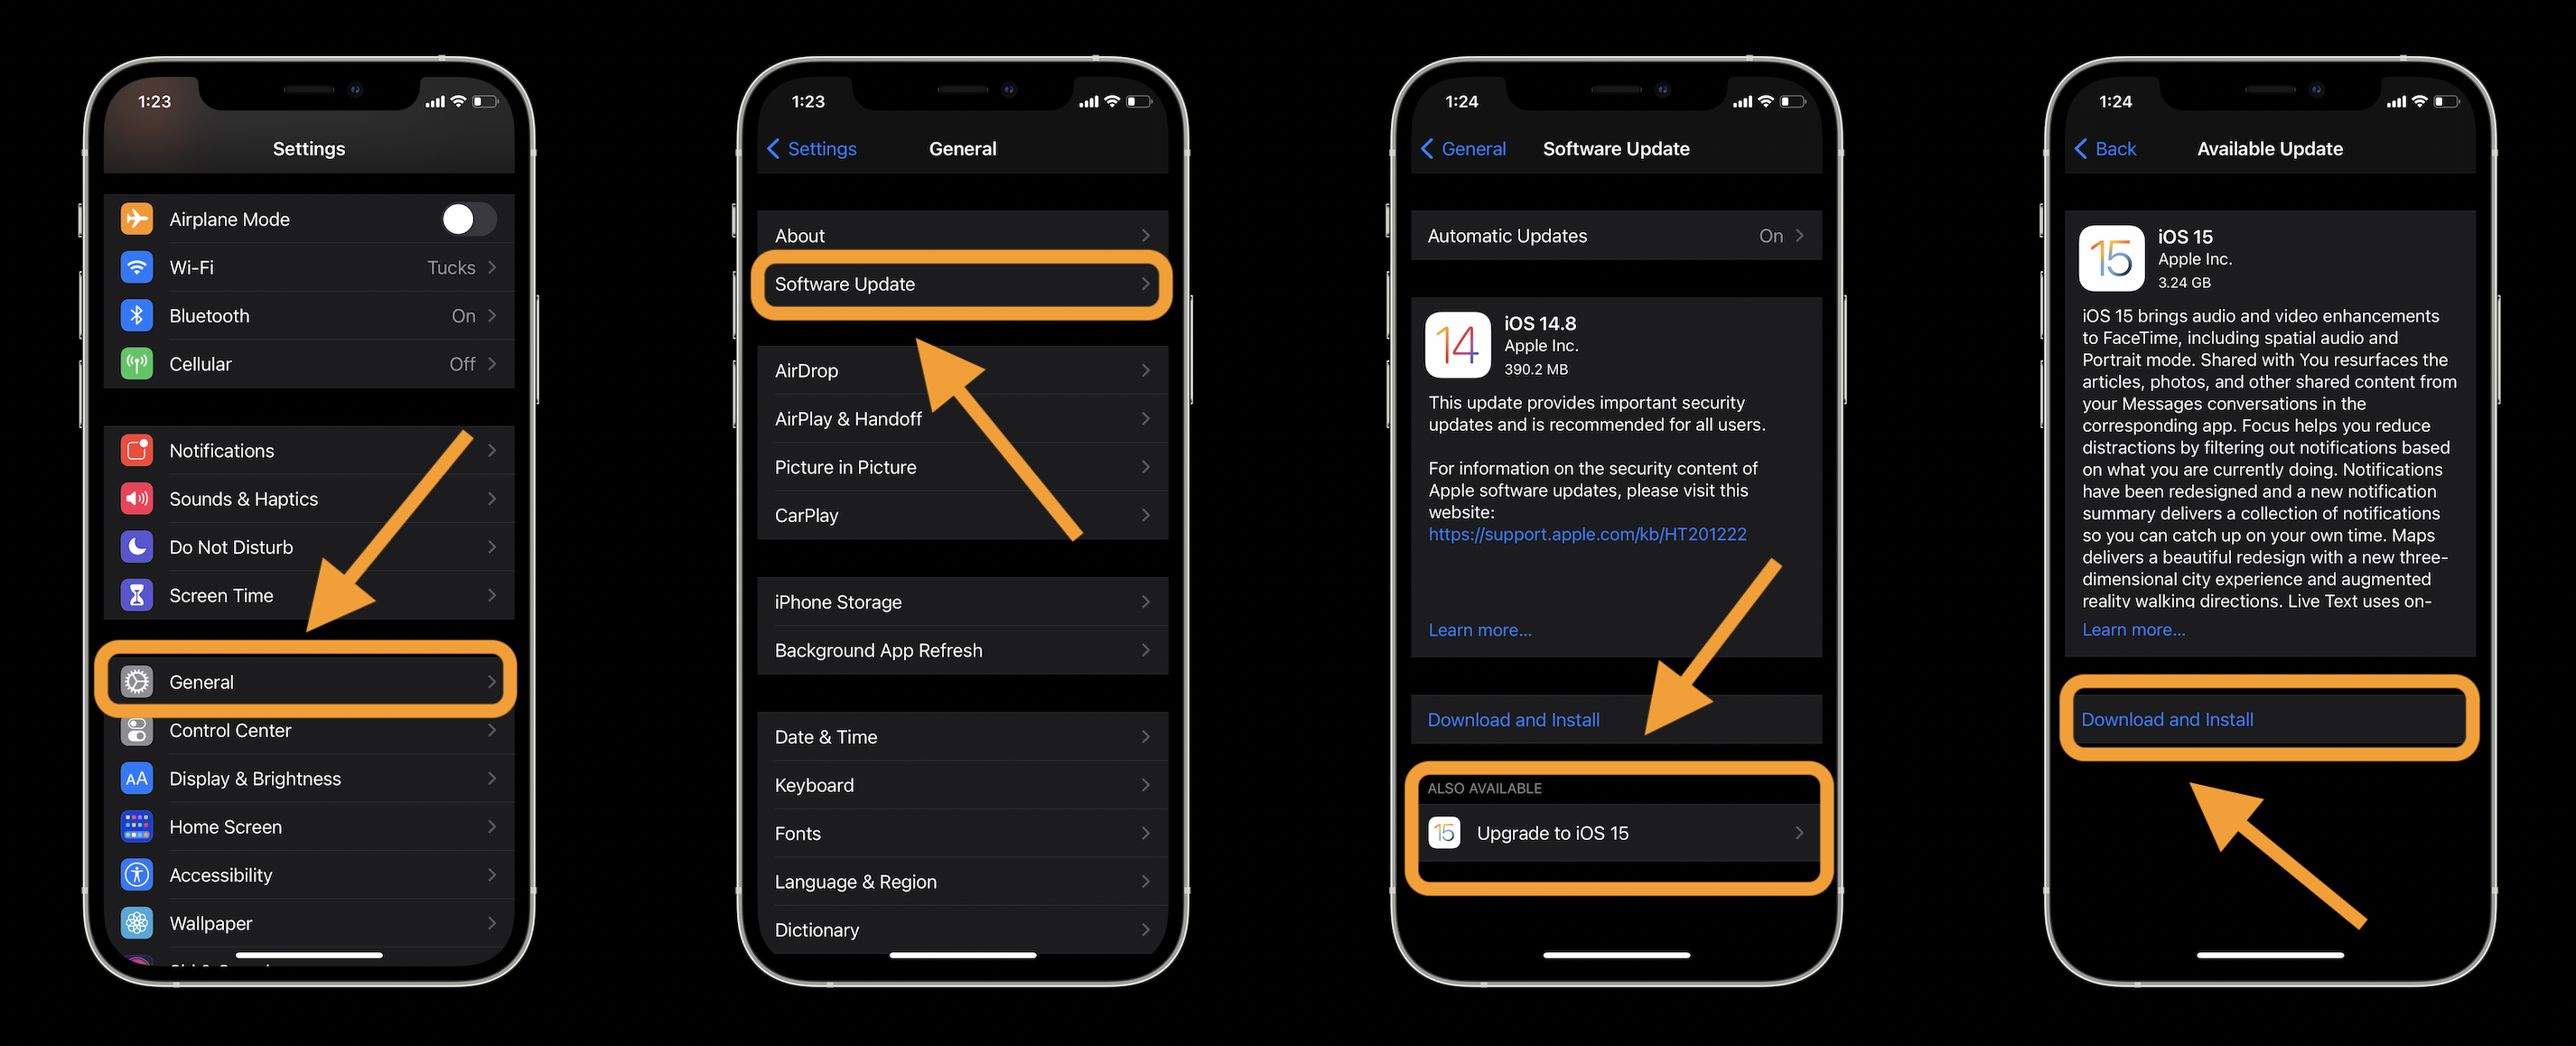 How to install iOS 15 on iPhone